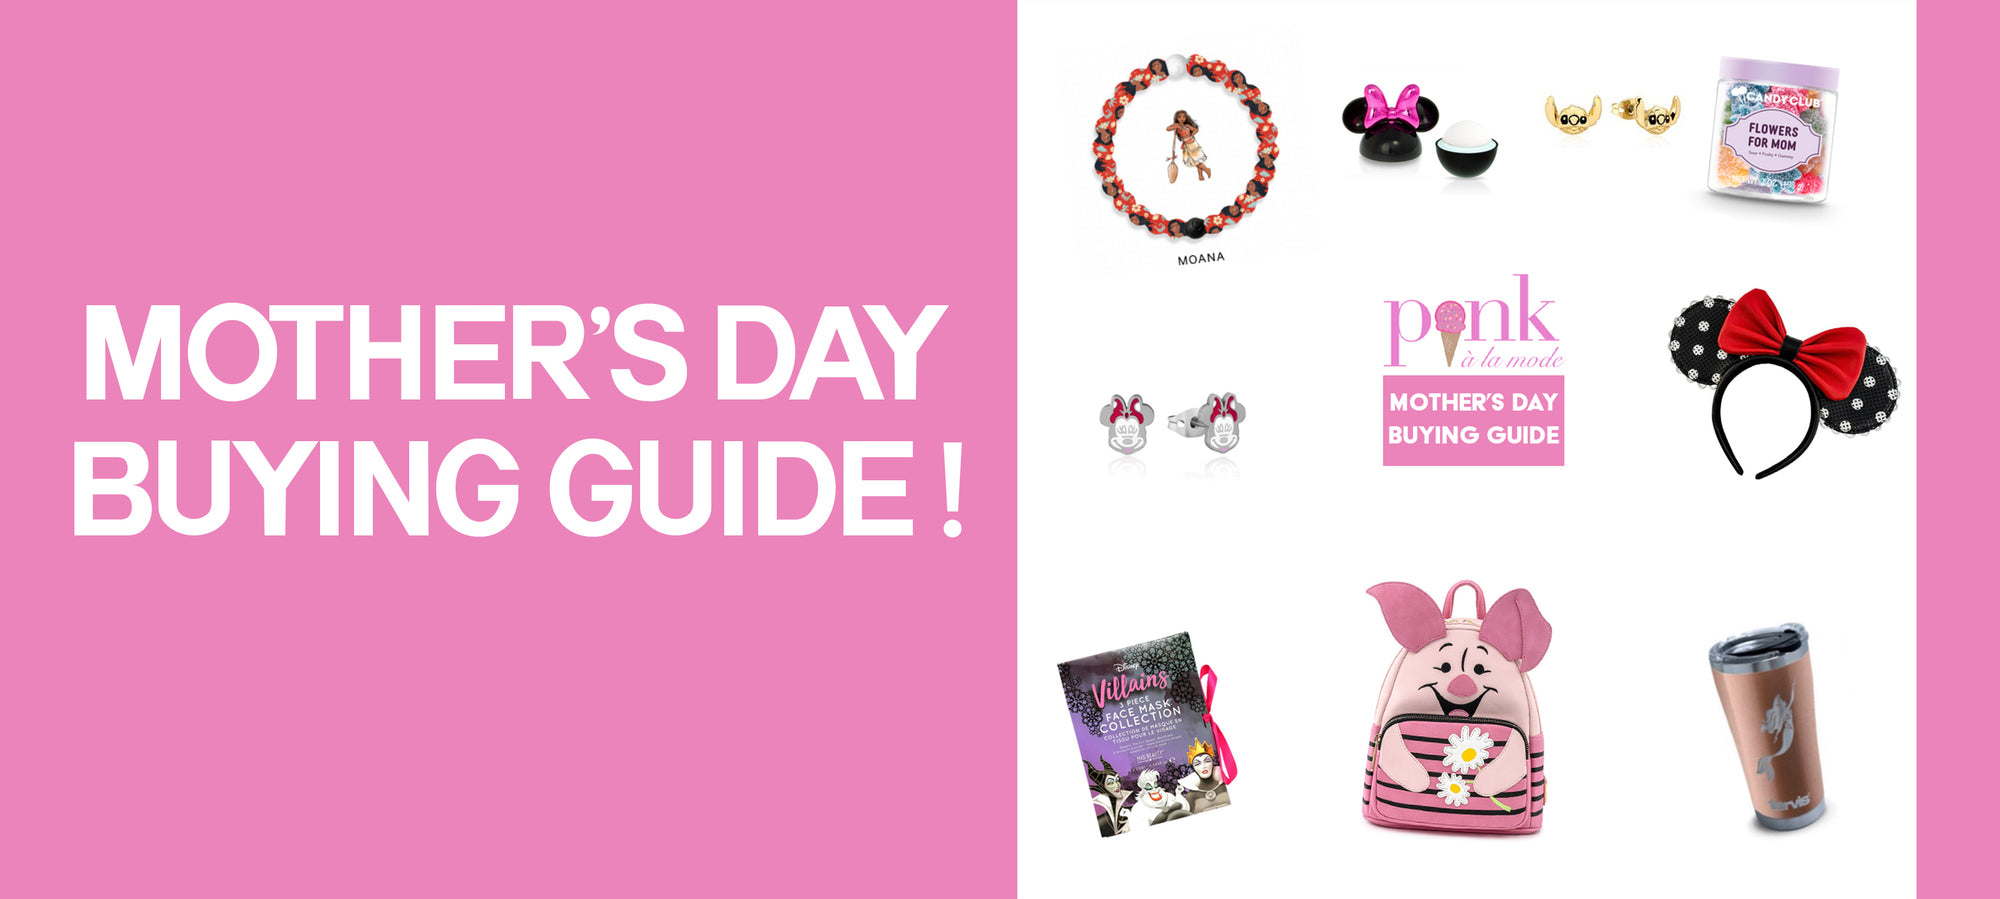 Mother's Day Buying Guide!